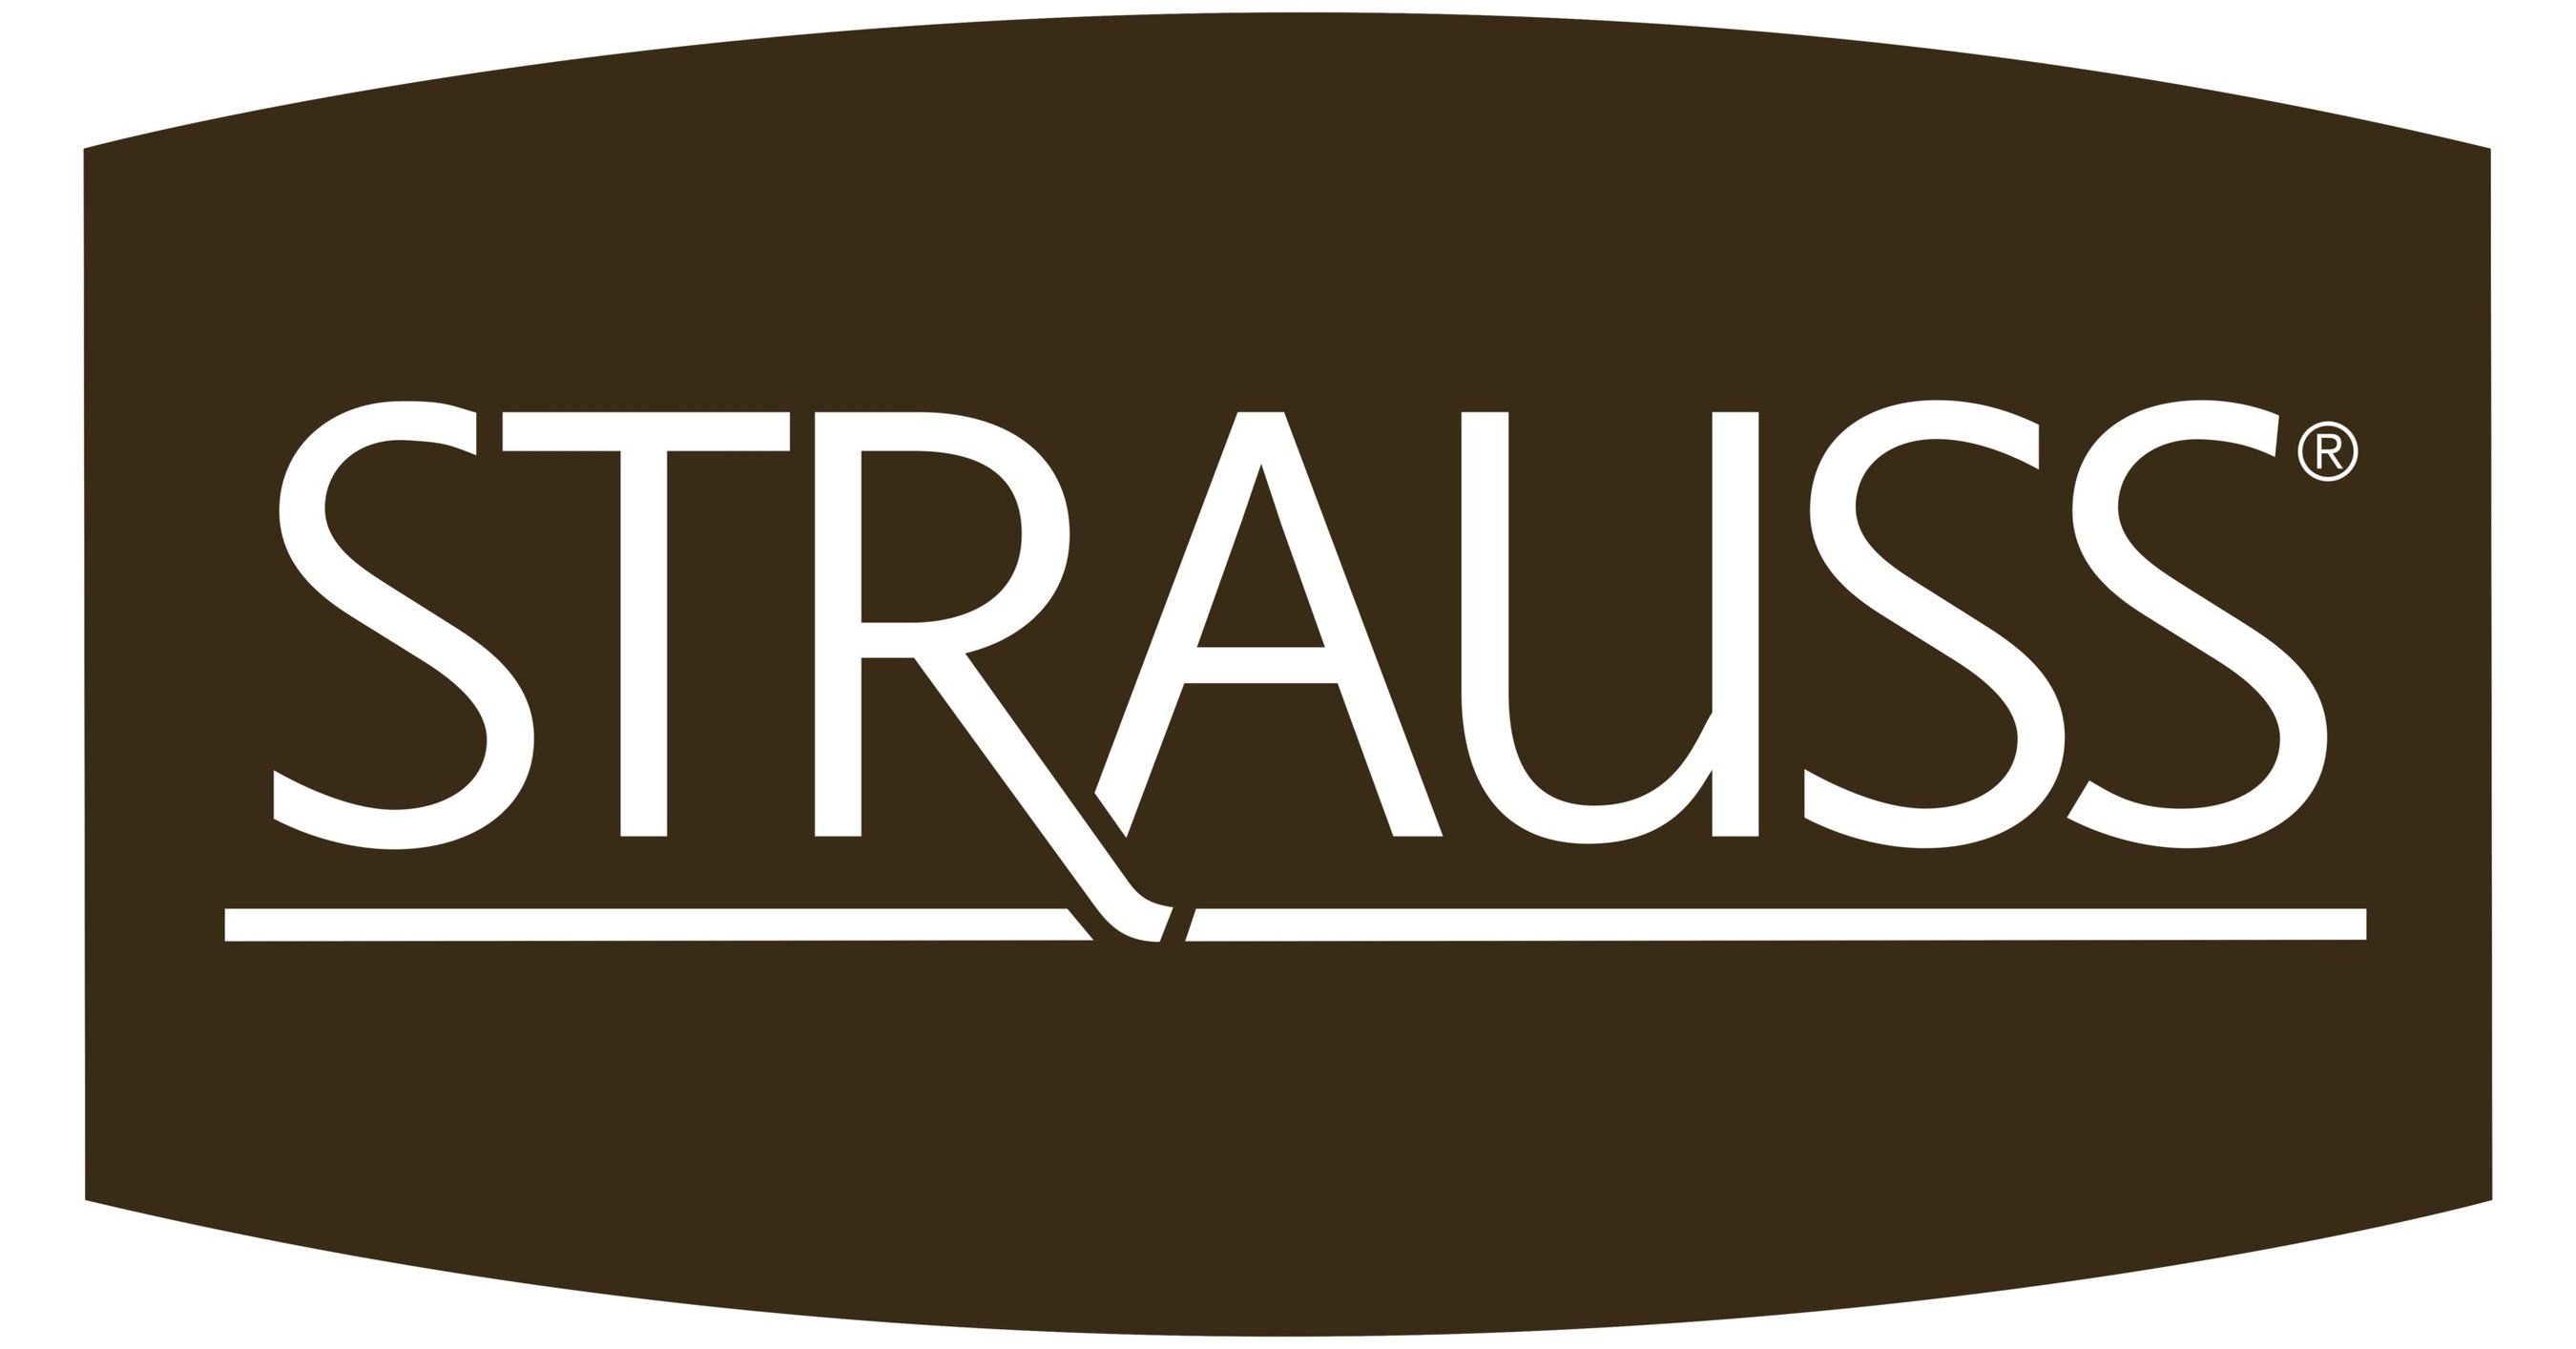 Strauss Brands Seeks to Grow Grass Fed Beef Production